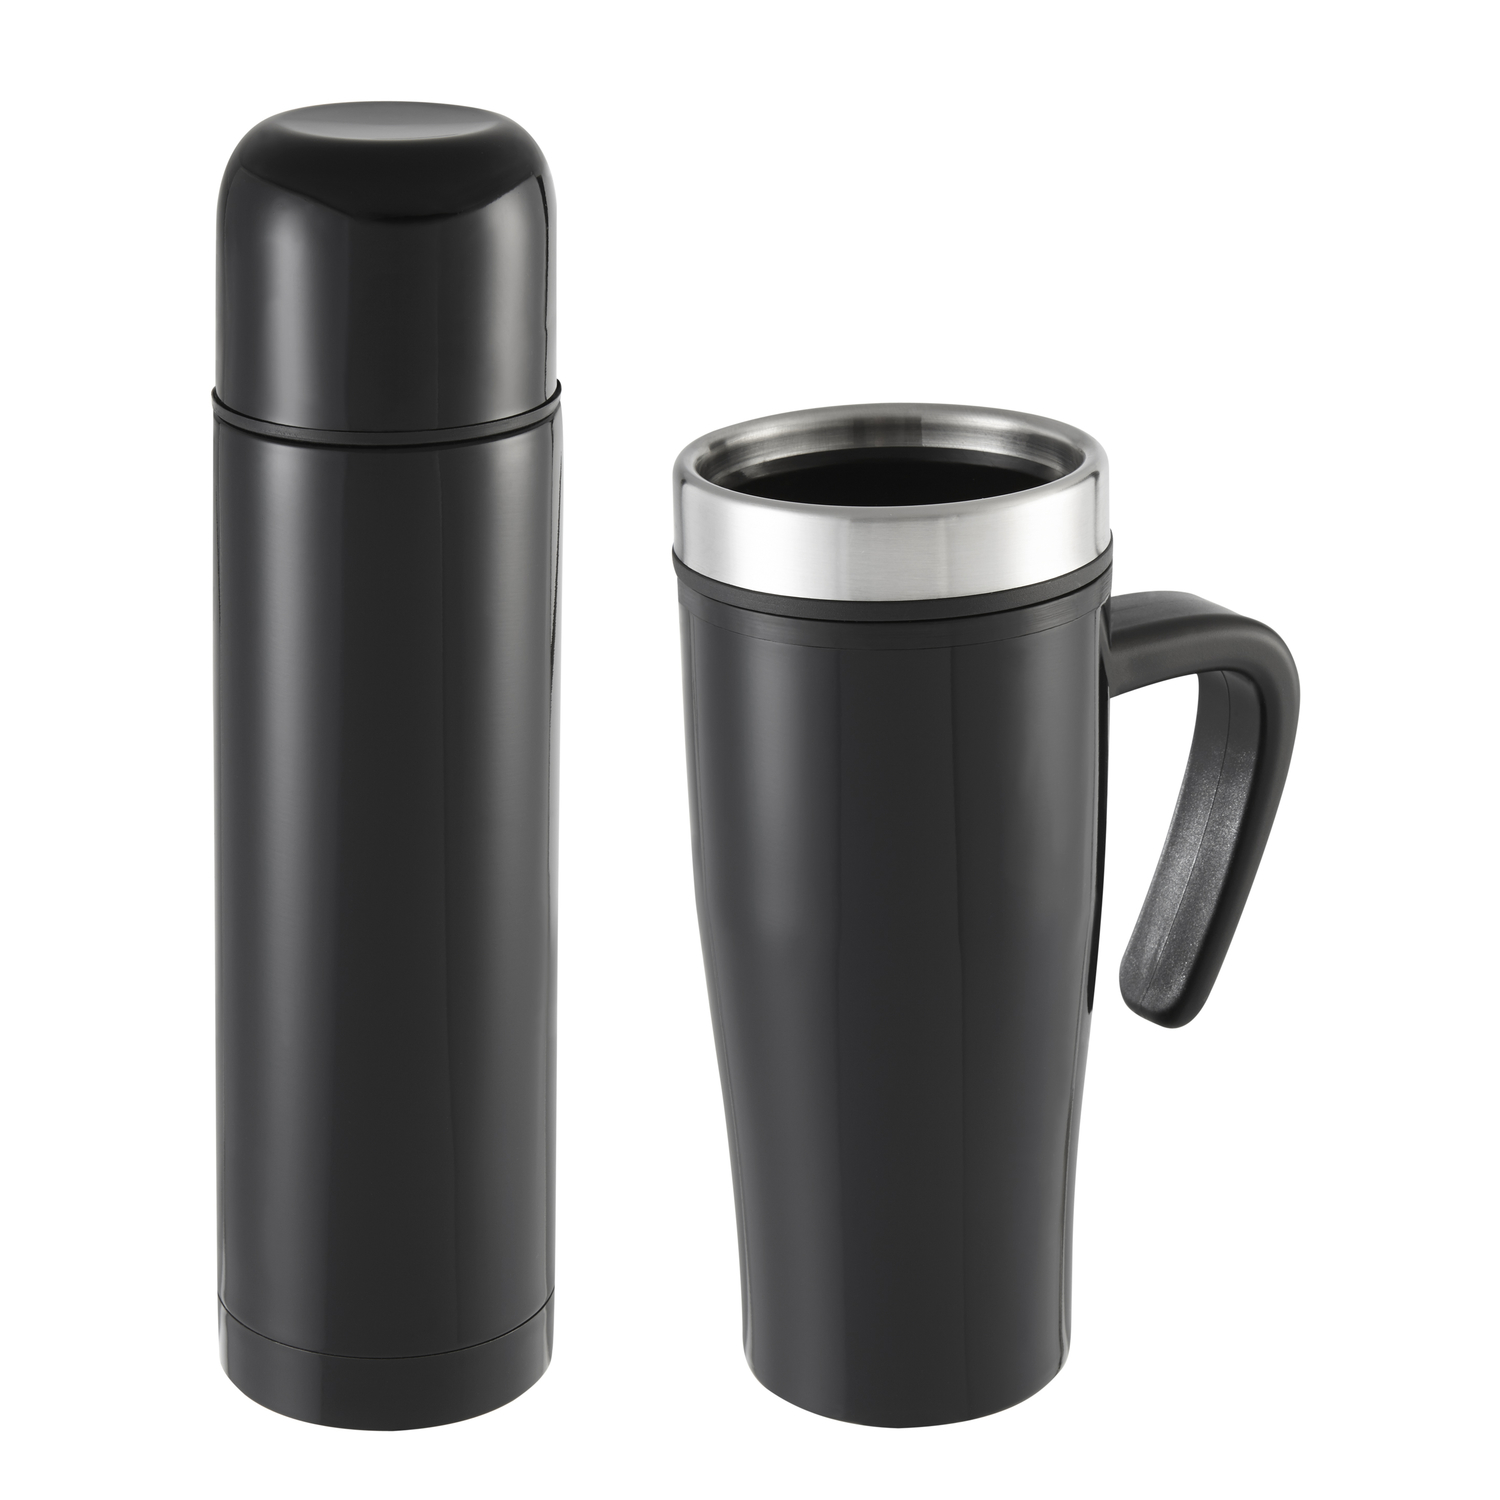 Sharper Image  Thermal Mug/Flask Set  Stainless Steel  2 pc. Black